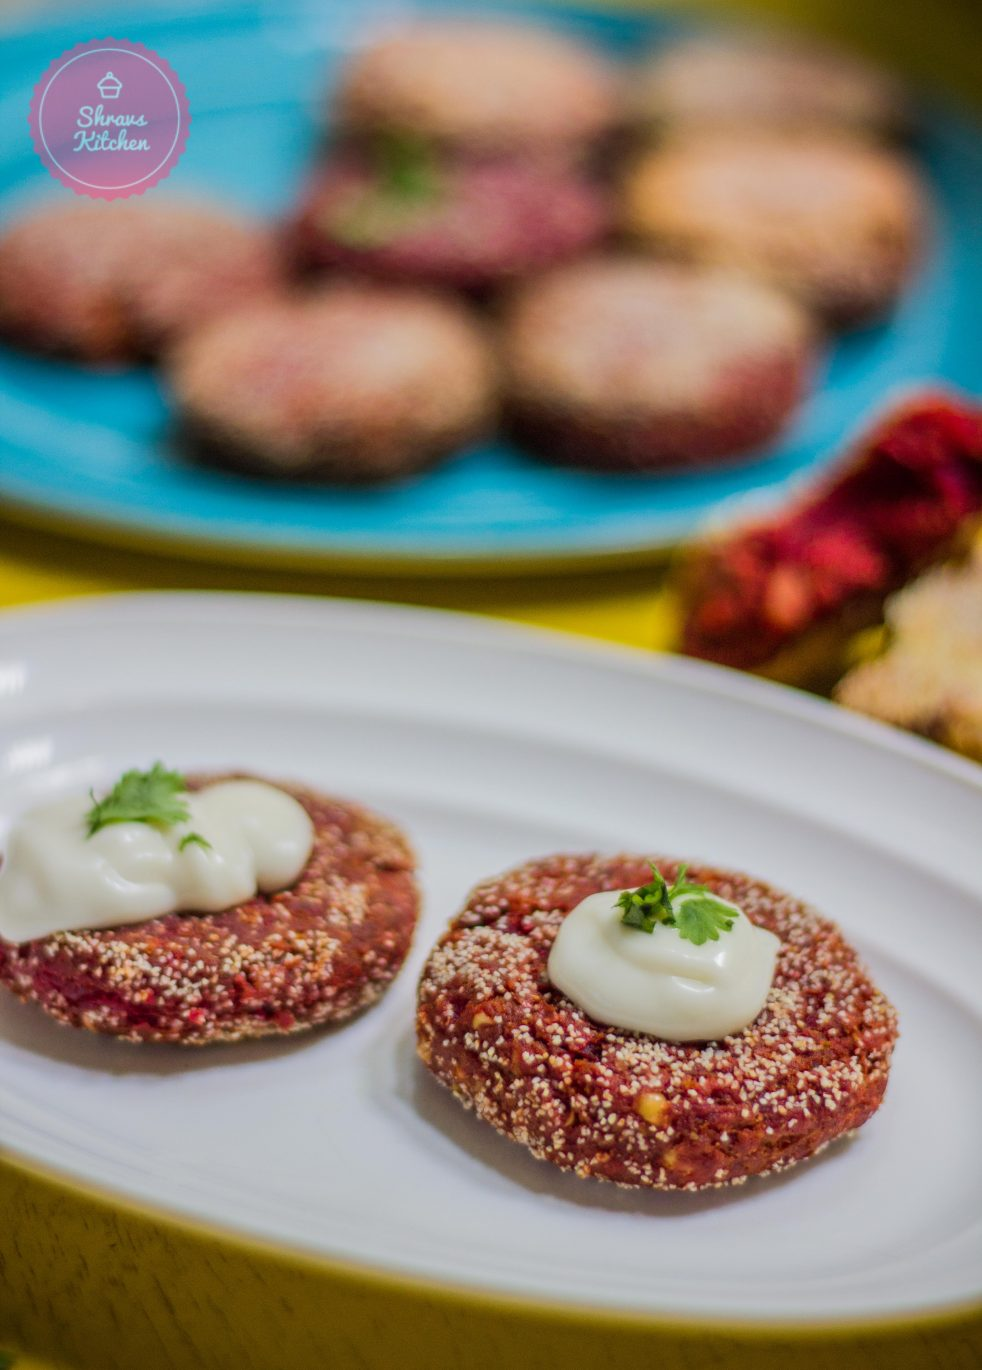 beetroot peanut kebab / beetroot cutlet / beetroot tikki recipe